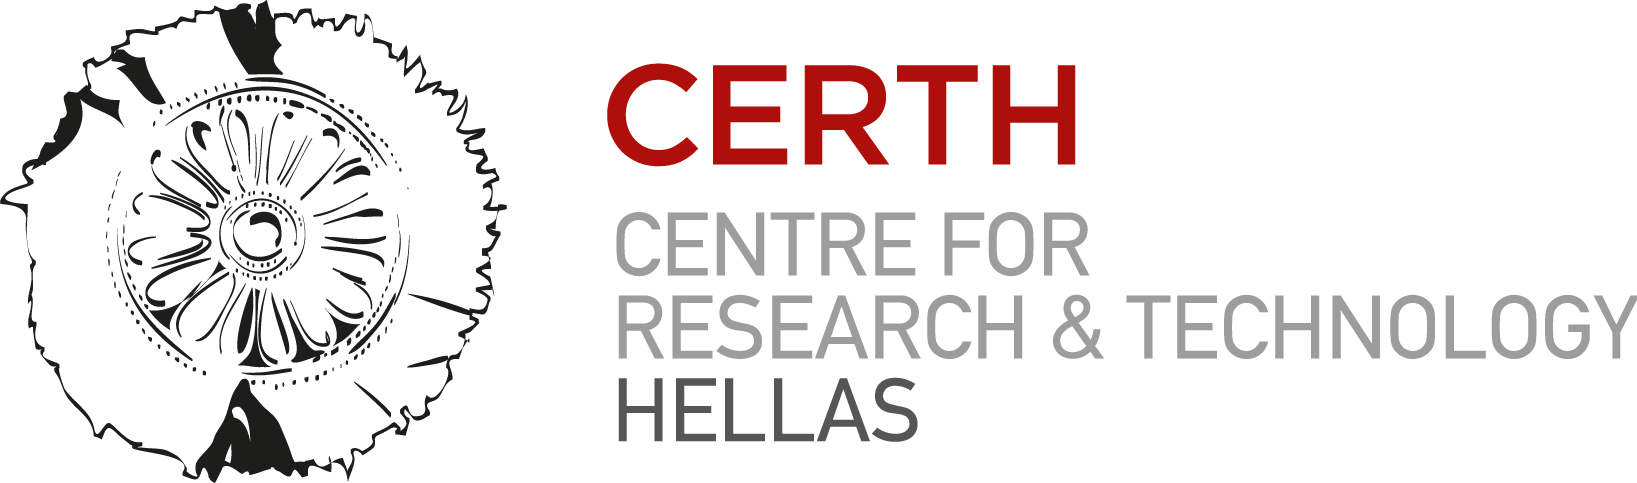 CERTH LOGOentransparent